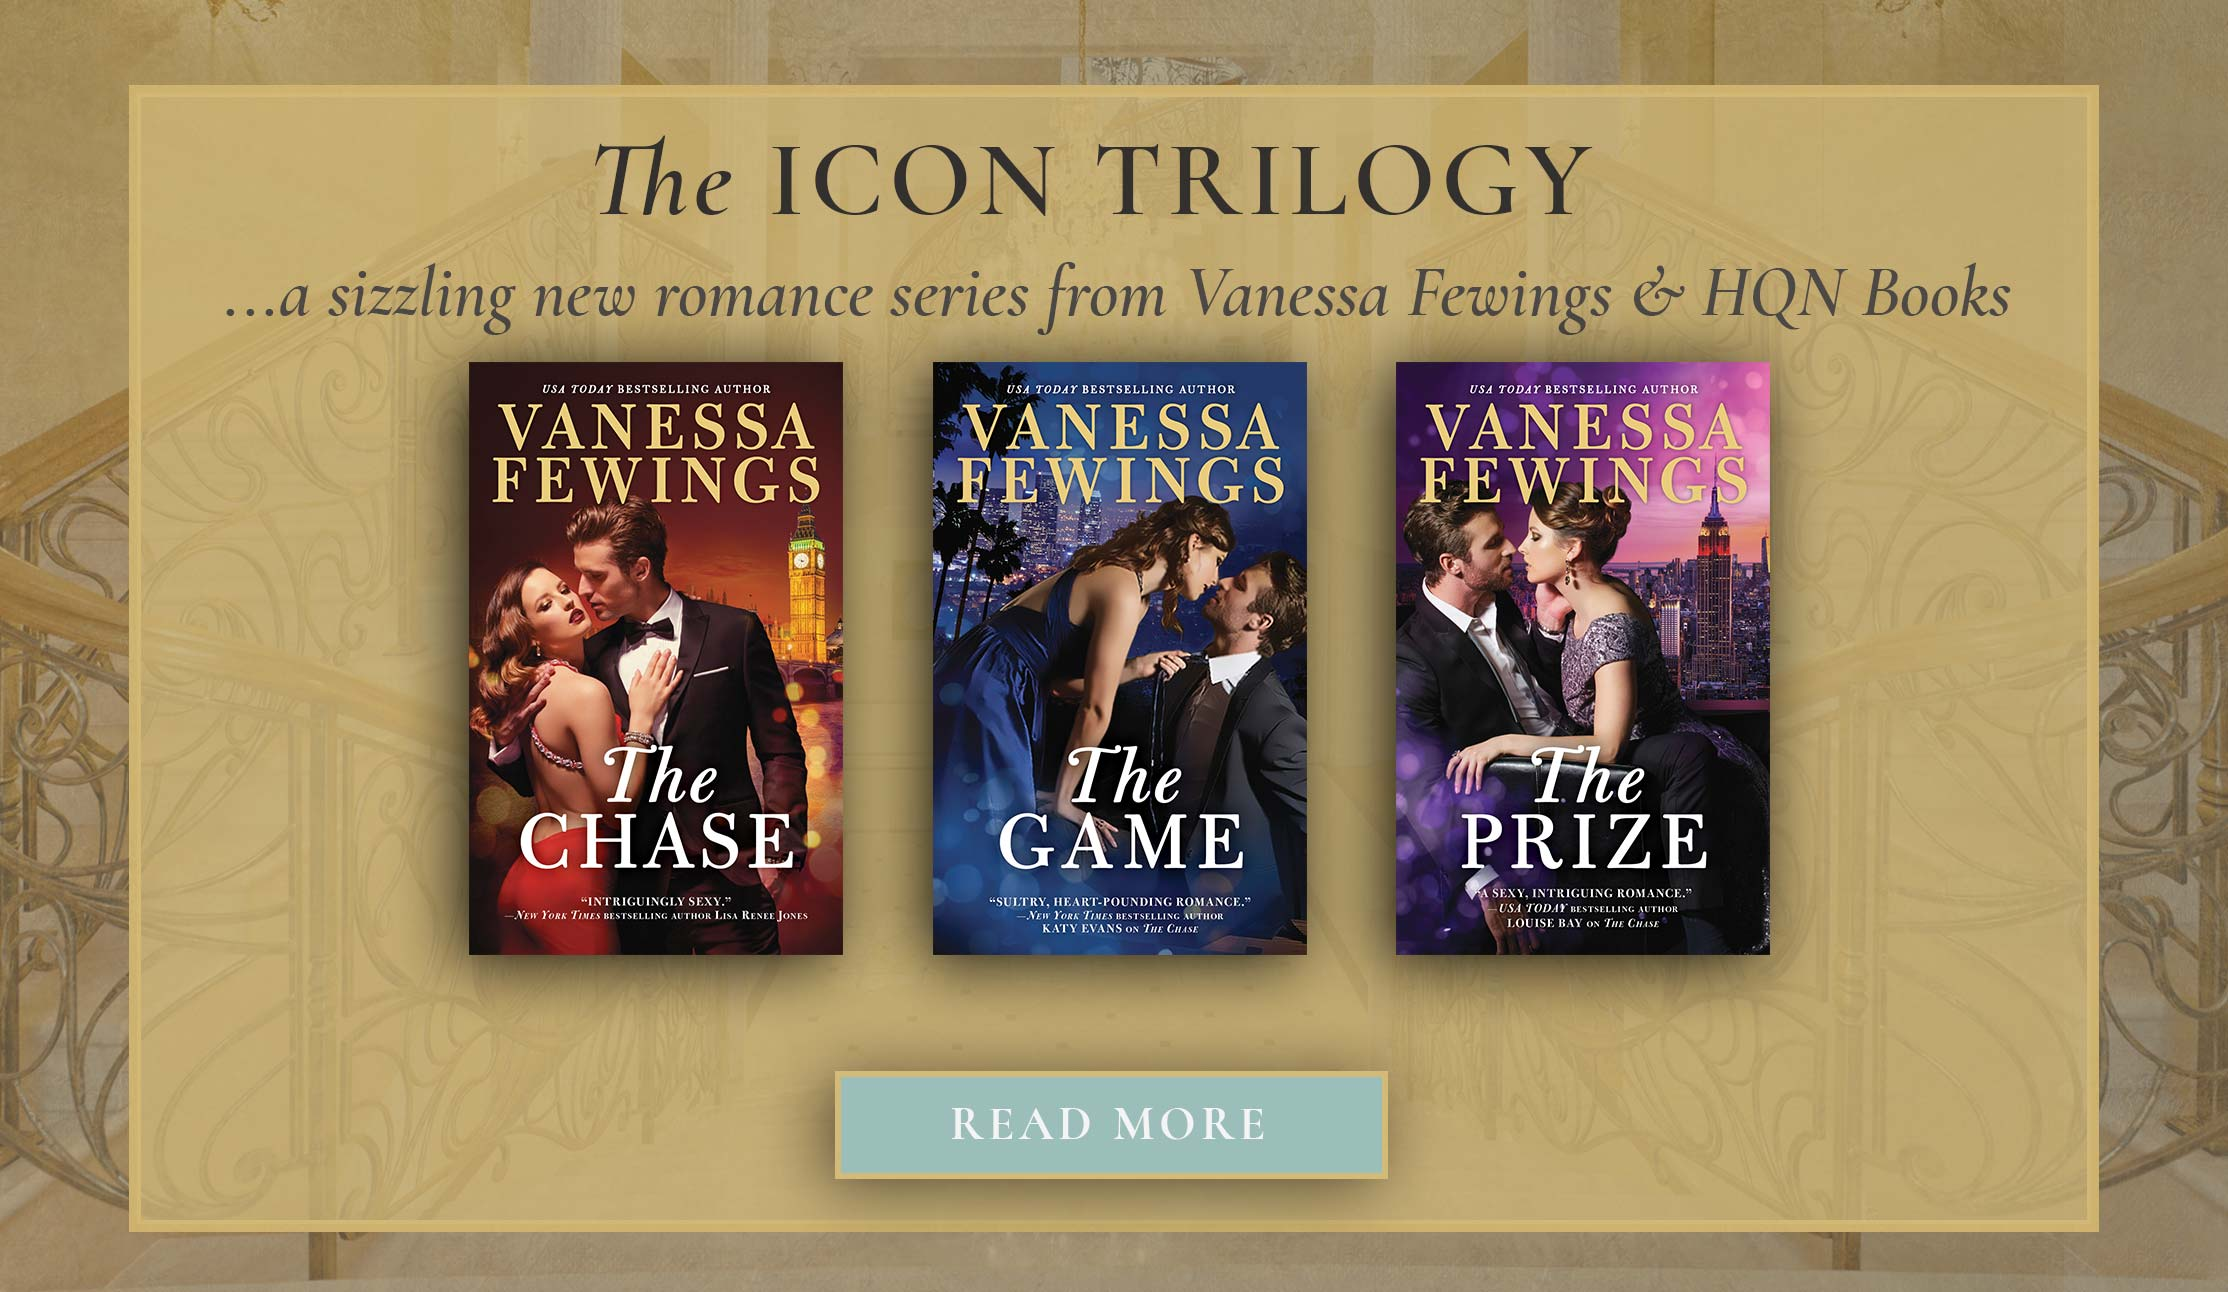 The Icon Trilogy - a sizzling new romance series from Vanessa Fewings and HQN Books